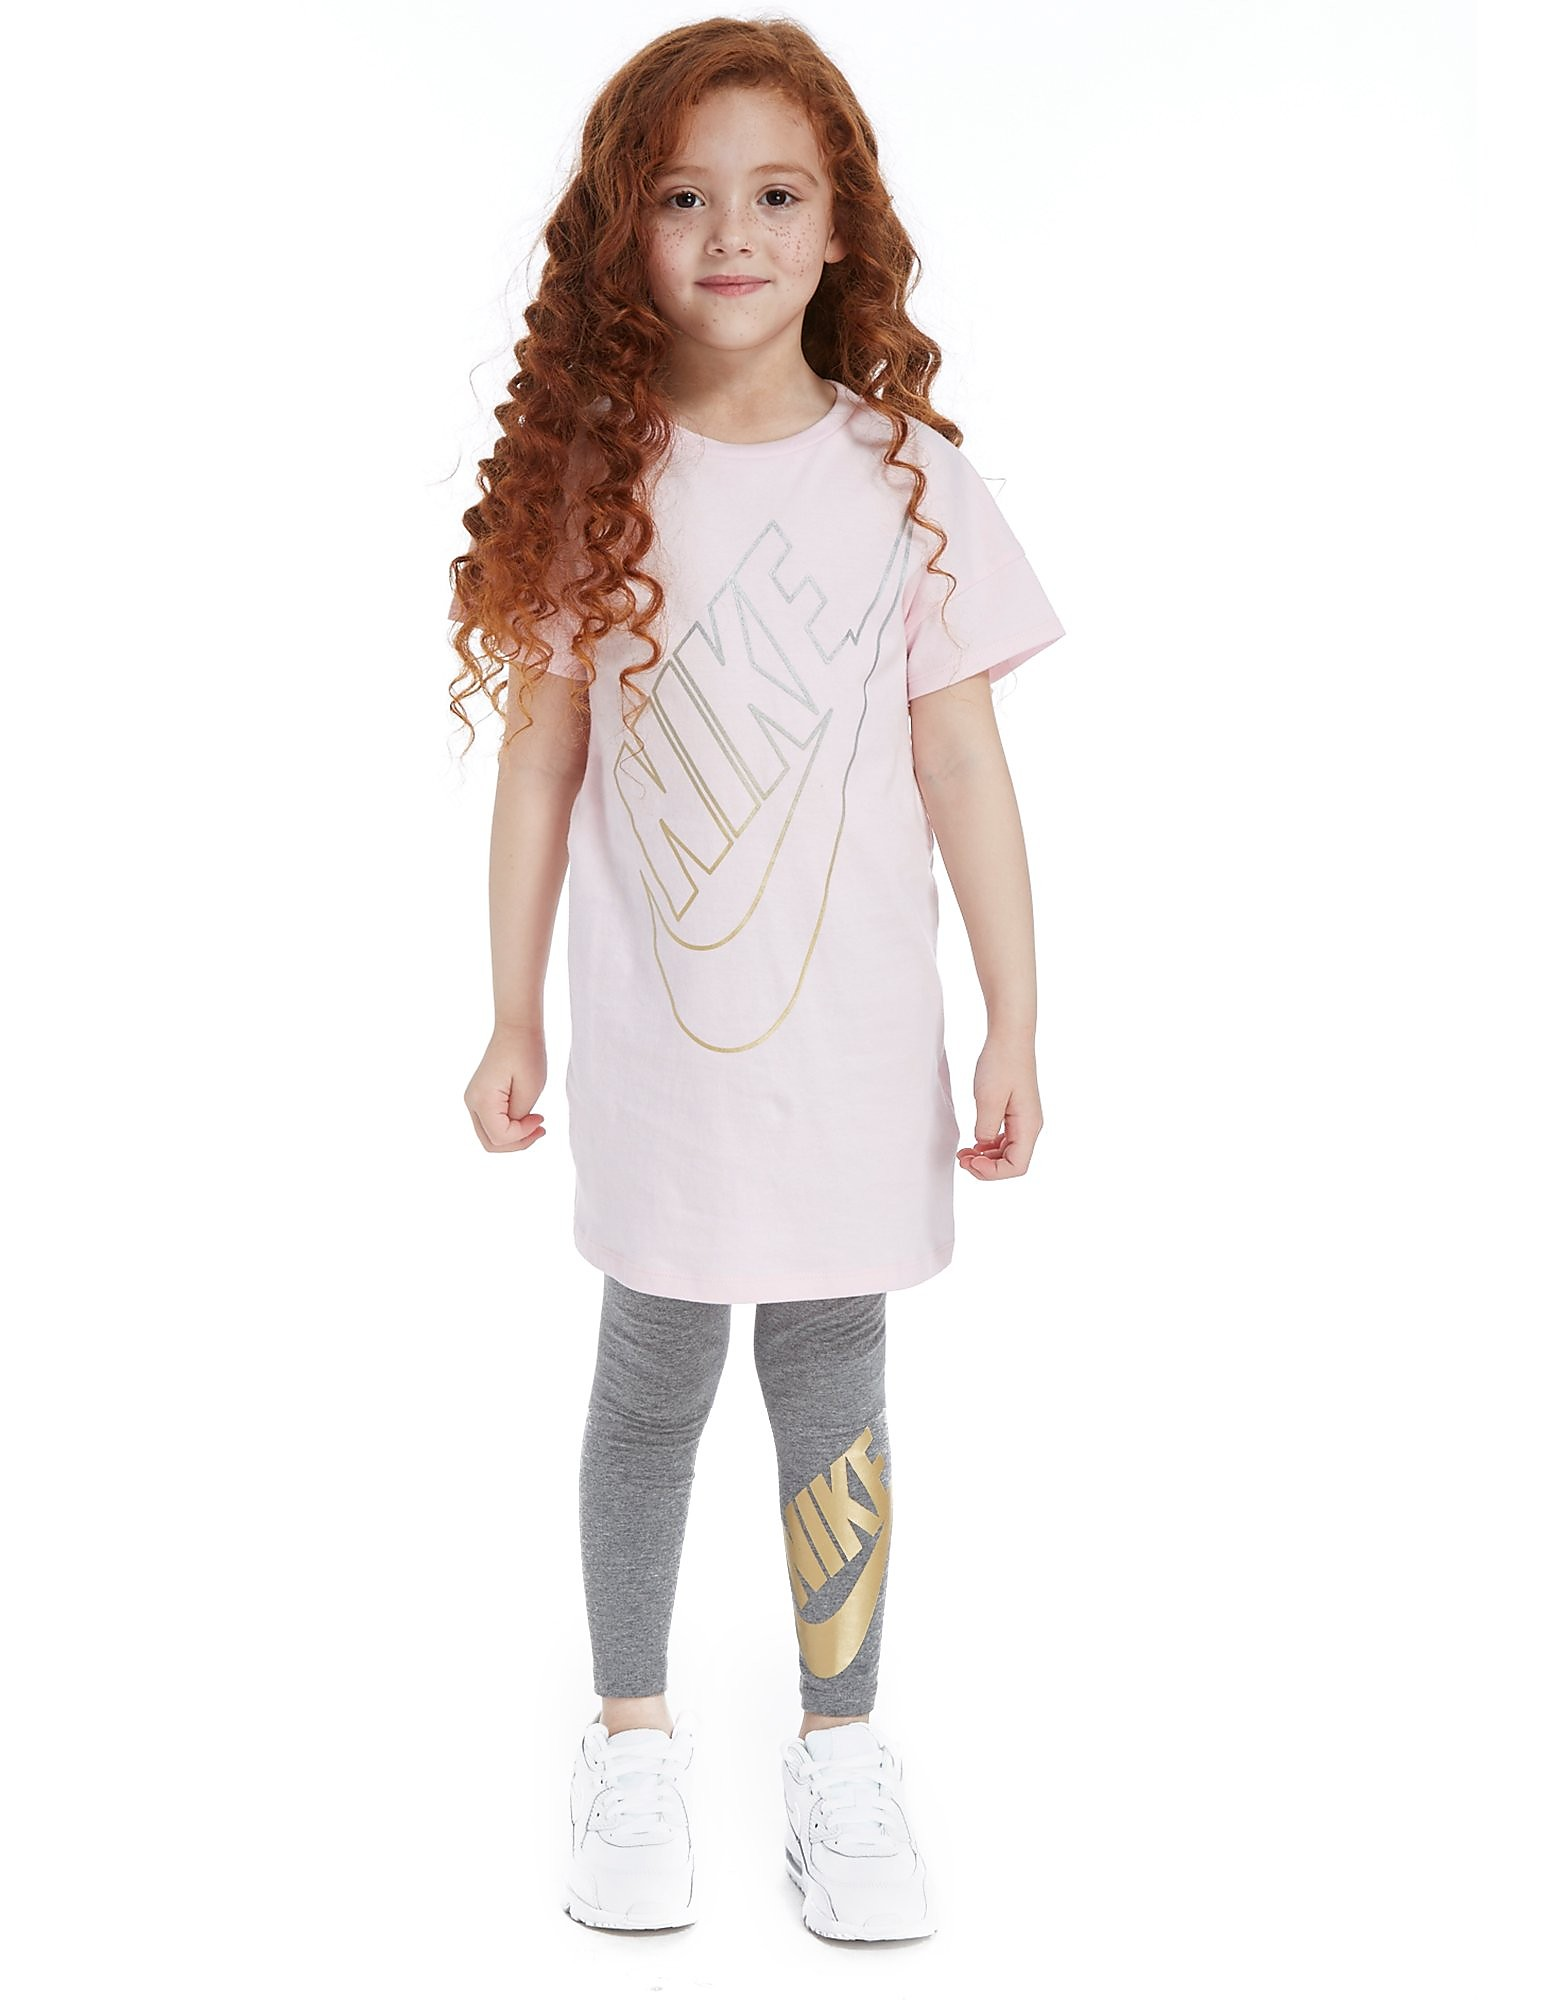 Nike Girls' T-Shirt/Leggings Set Children